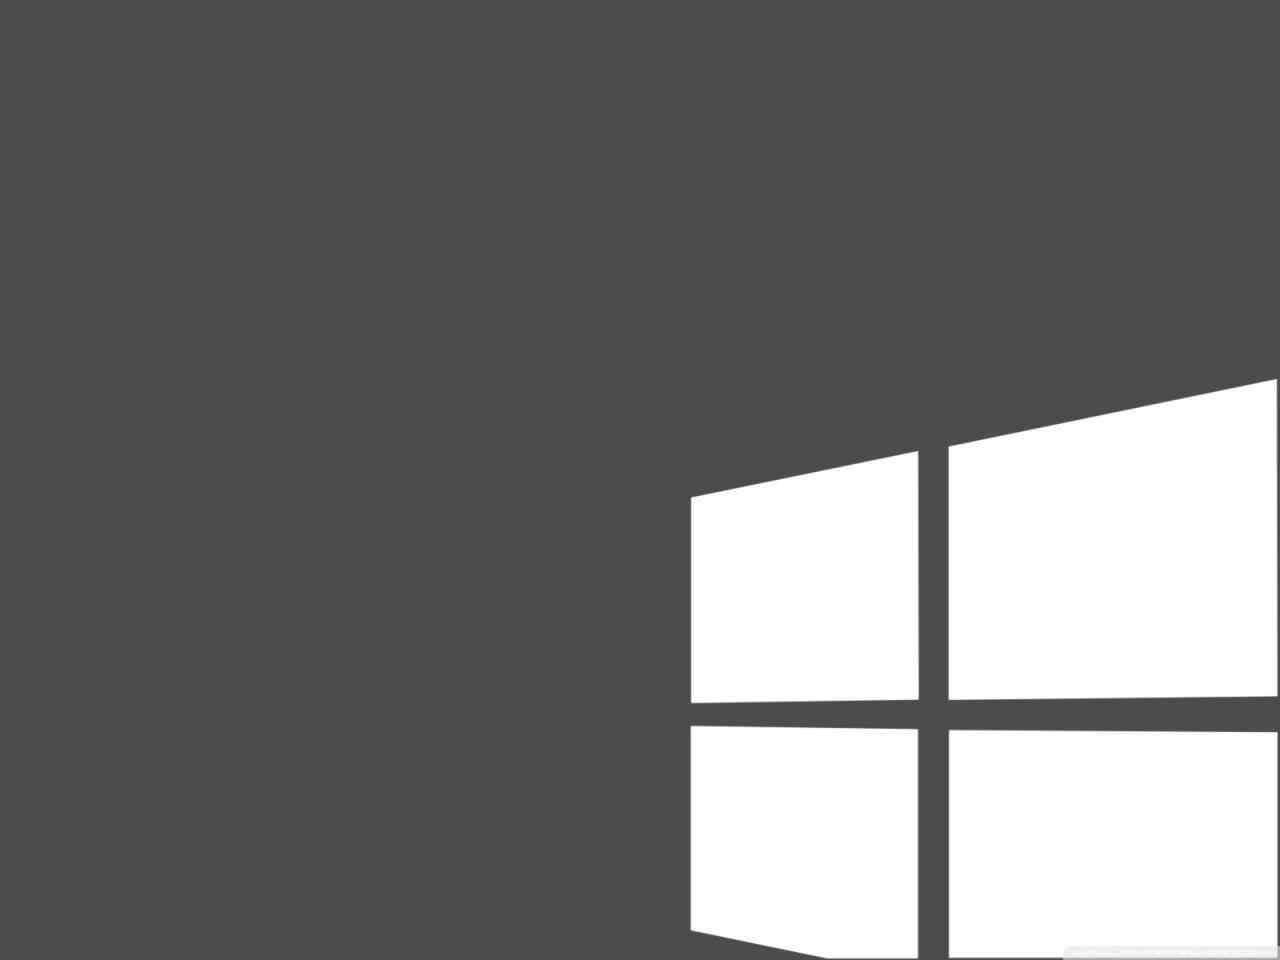 Grey & White Windows 10 Wallpaper